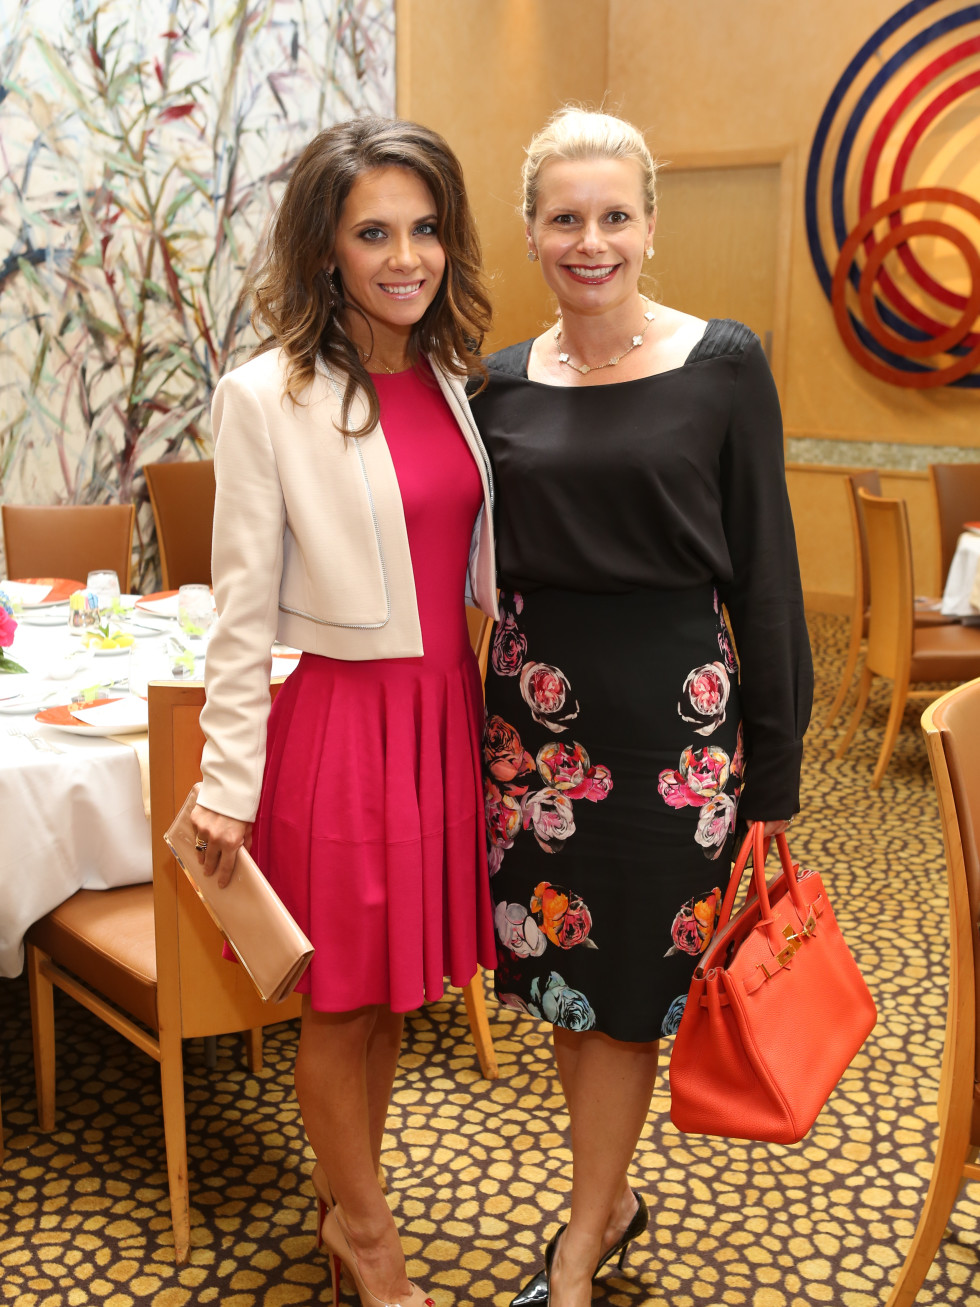 HGO Ball luncheon, March 2016, Joanna Marks, Valerie Dieterich